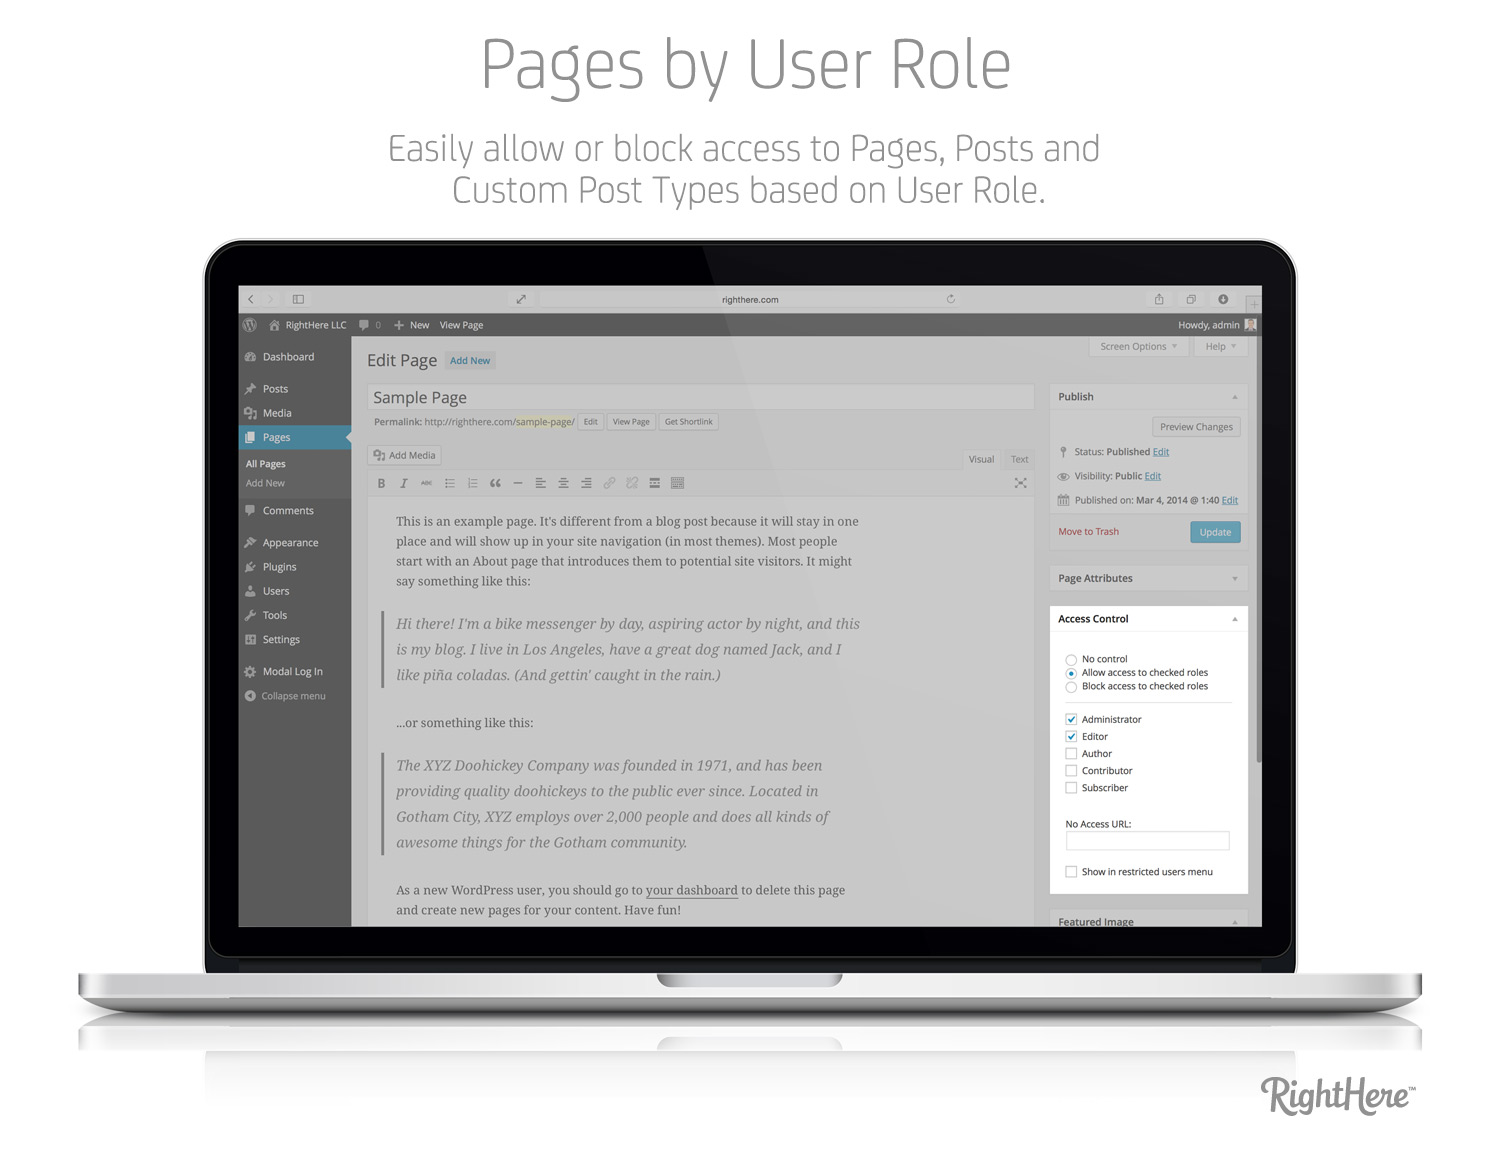 Pages by User Role for WordPress - Access Control Metabox